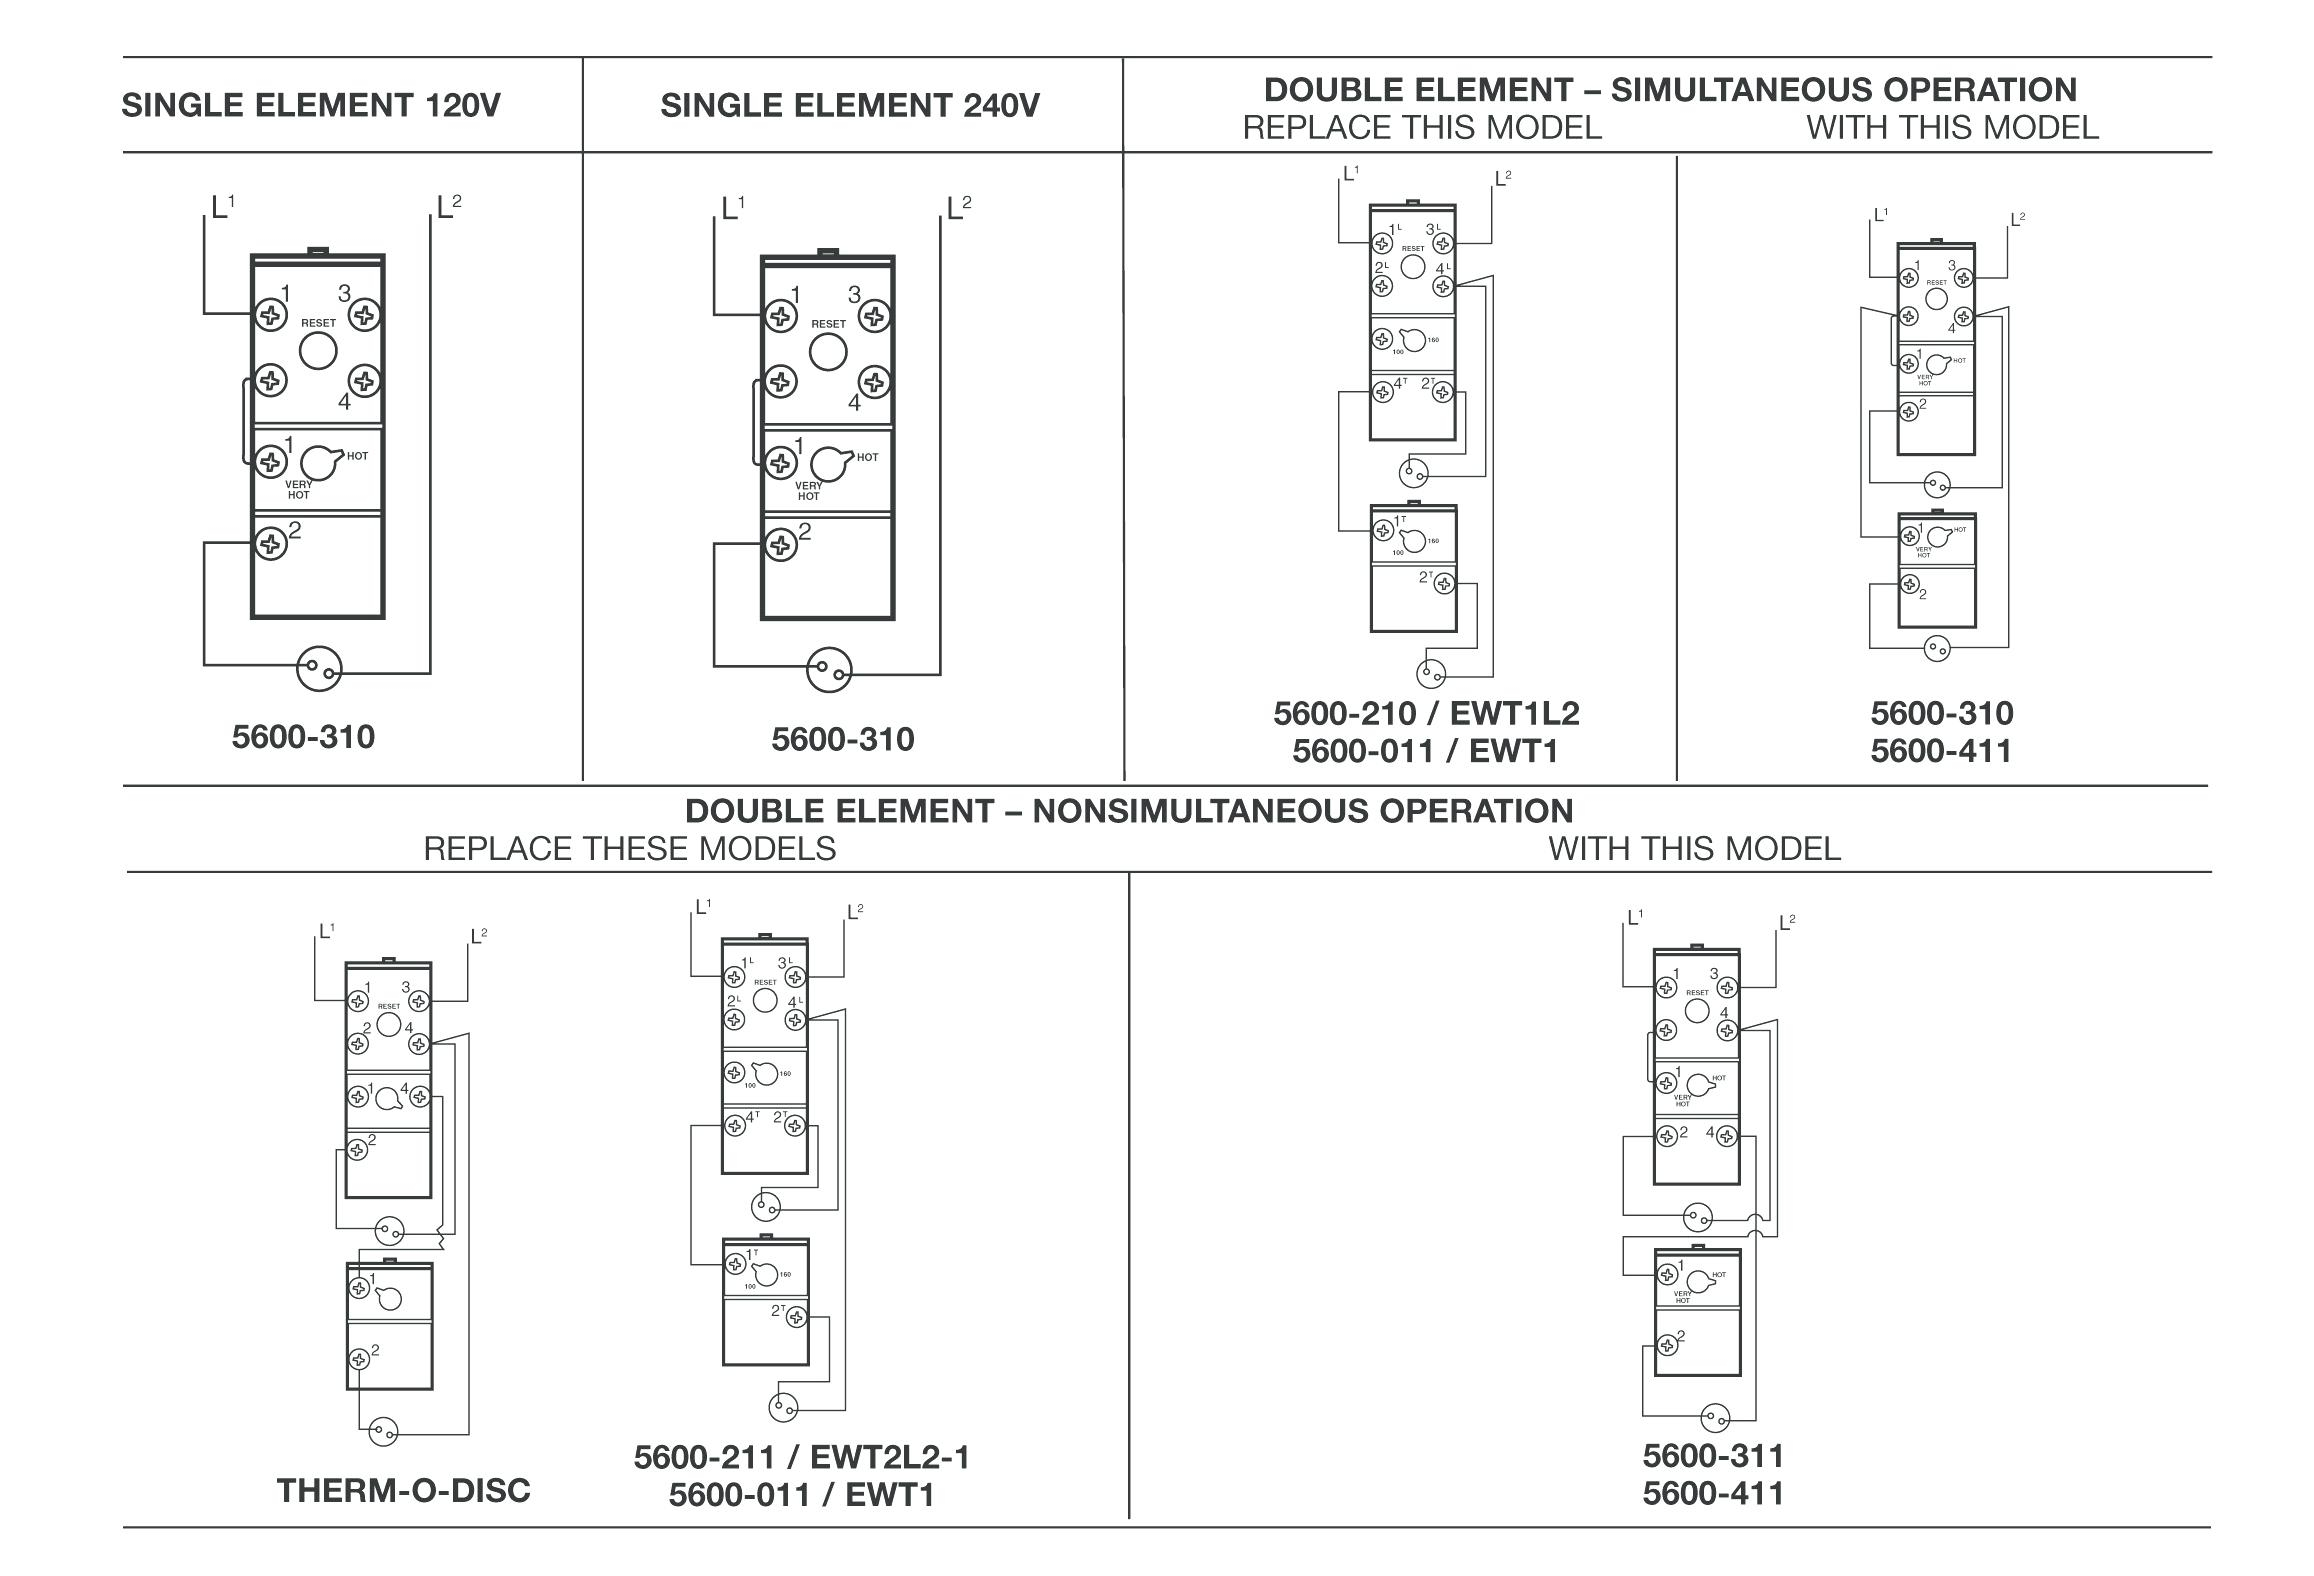 Unit Wiring Diagram As Well As Electric Hot Water Heater Diagram